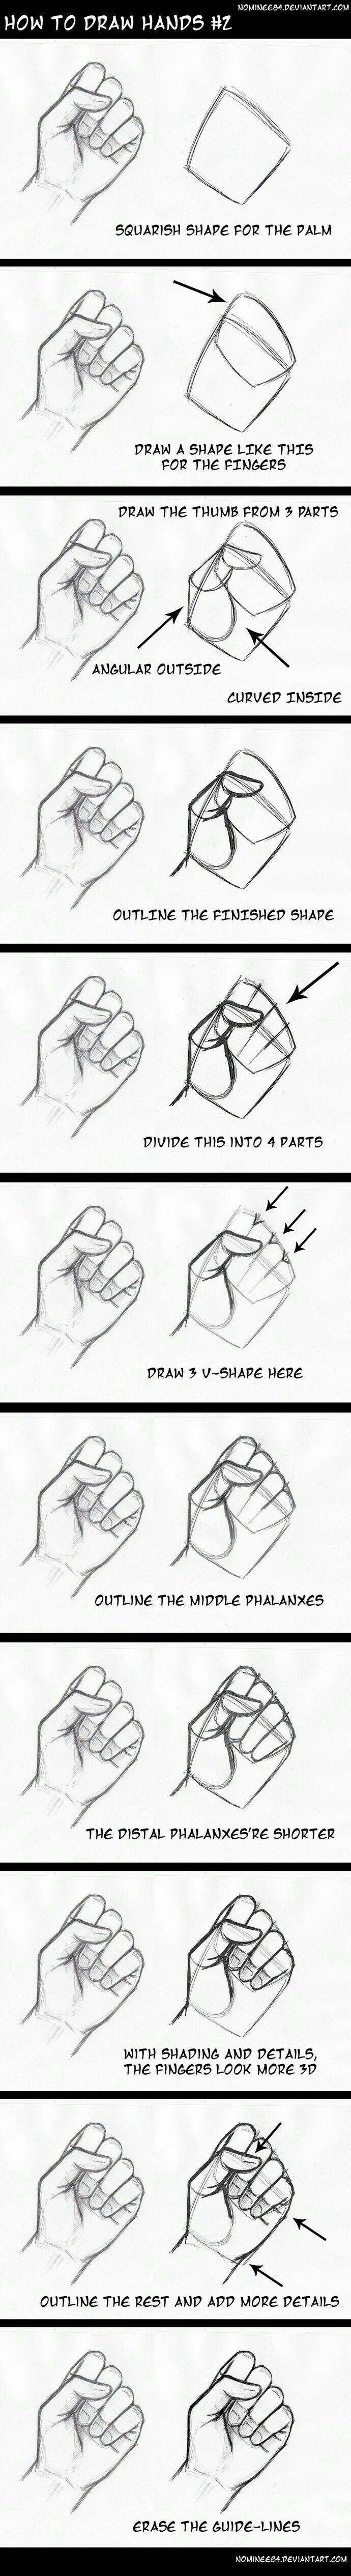 How to draw hands text how to draw manga anime